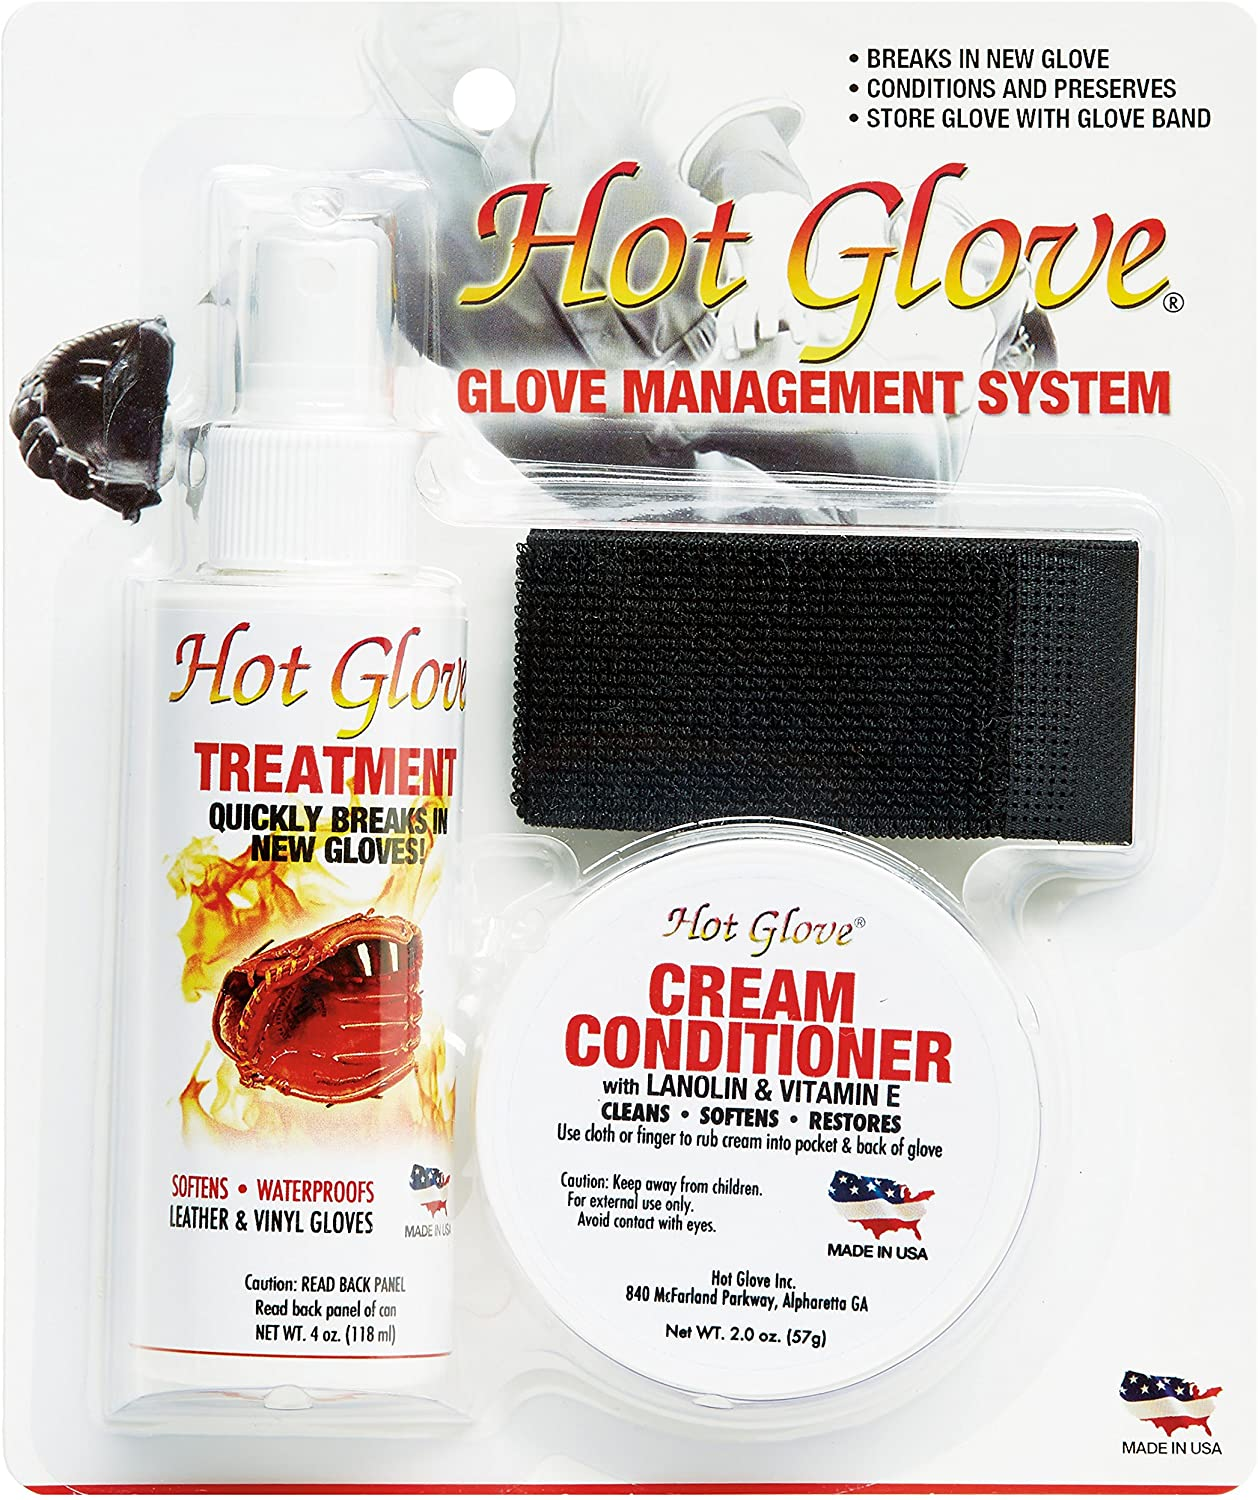 B0000ATDIY Hot Glove Break-in Kit Glove Care Management System 916FrKPo1WL